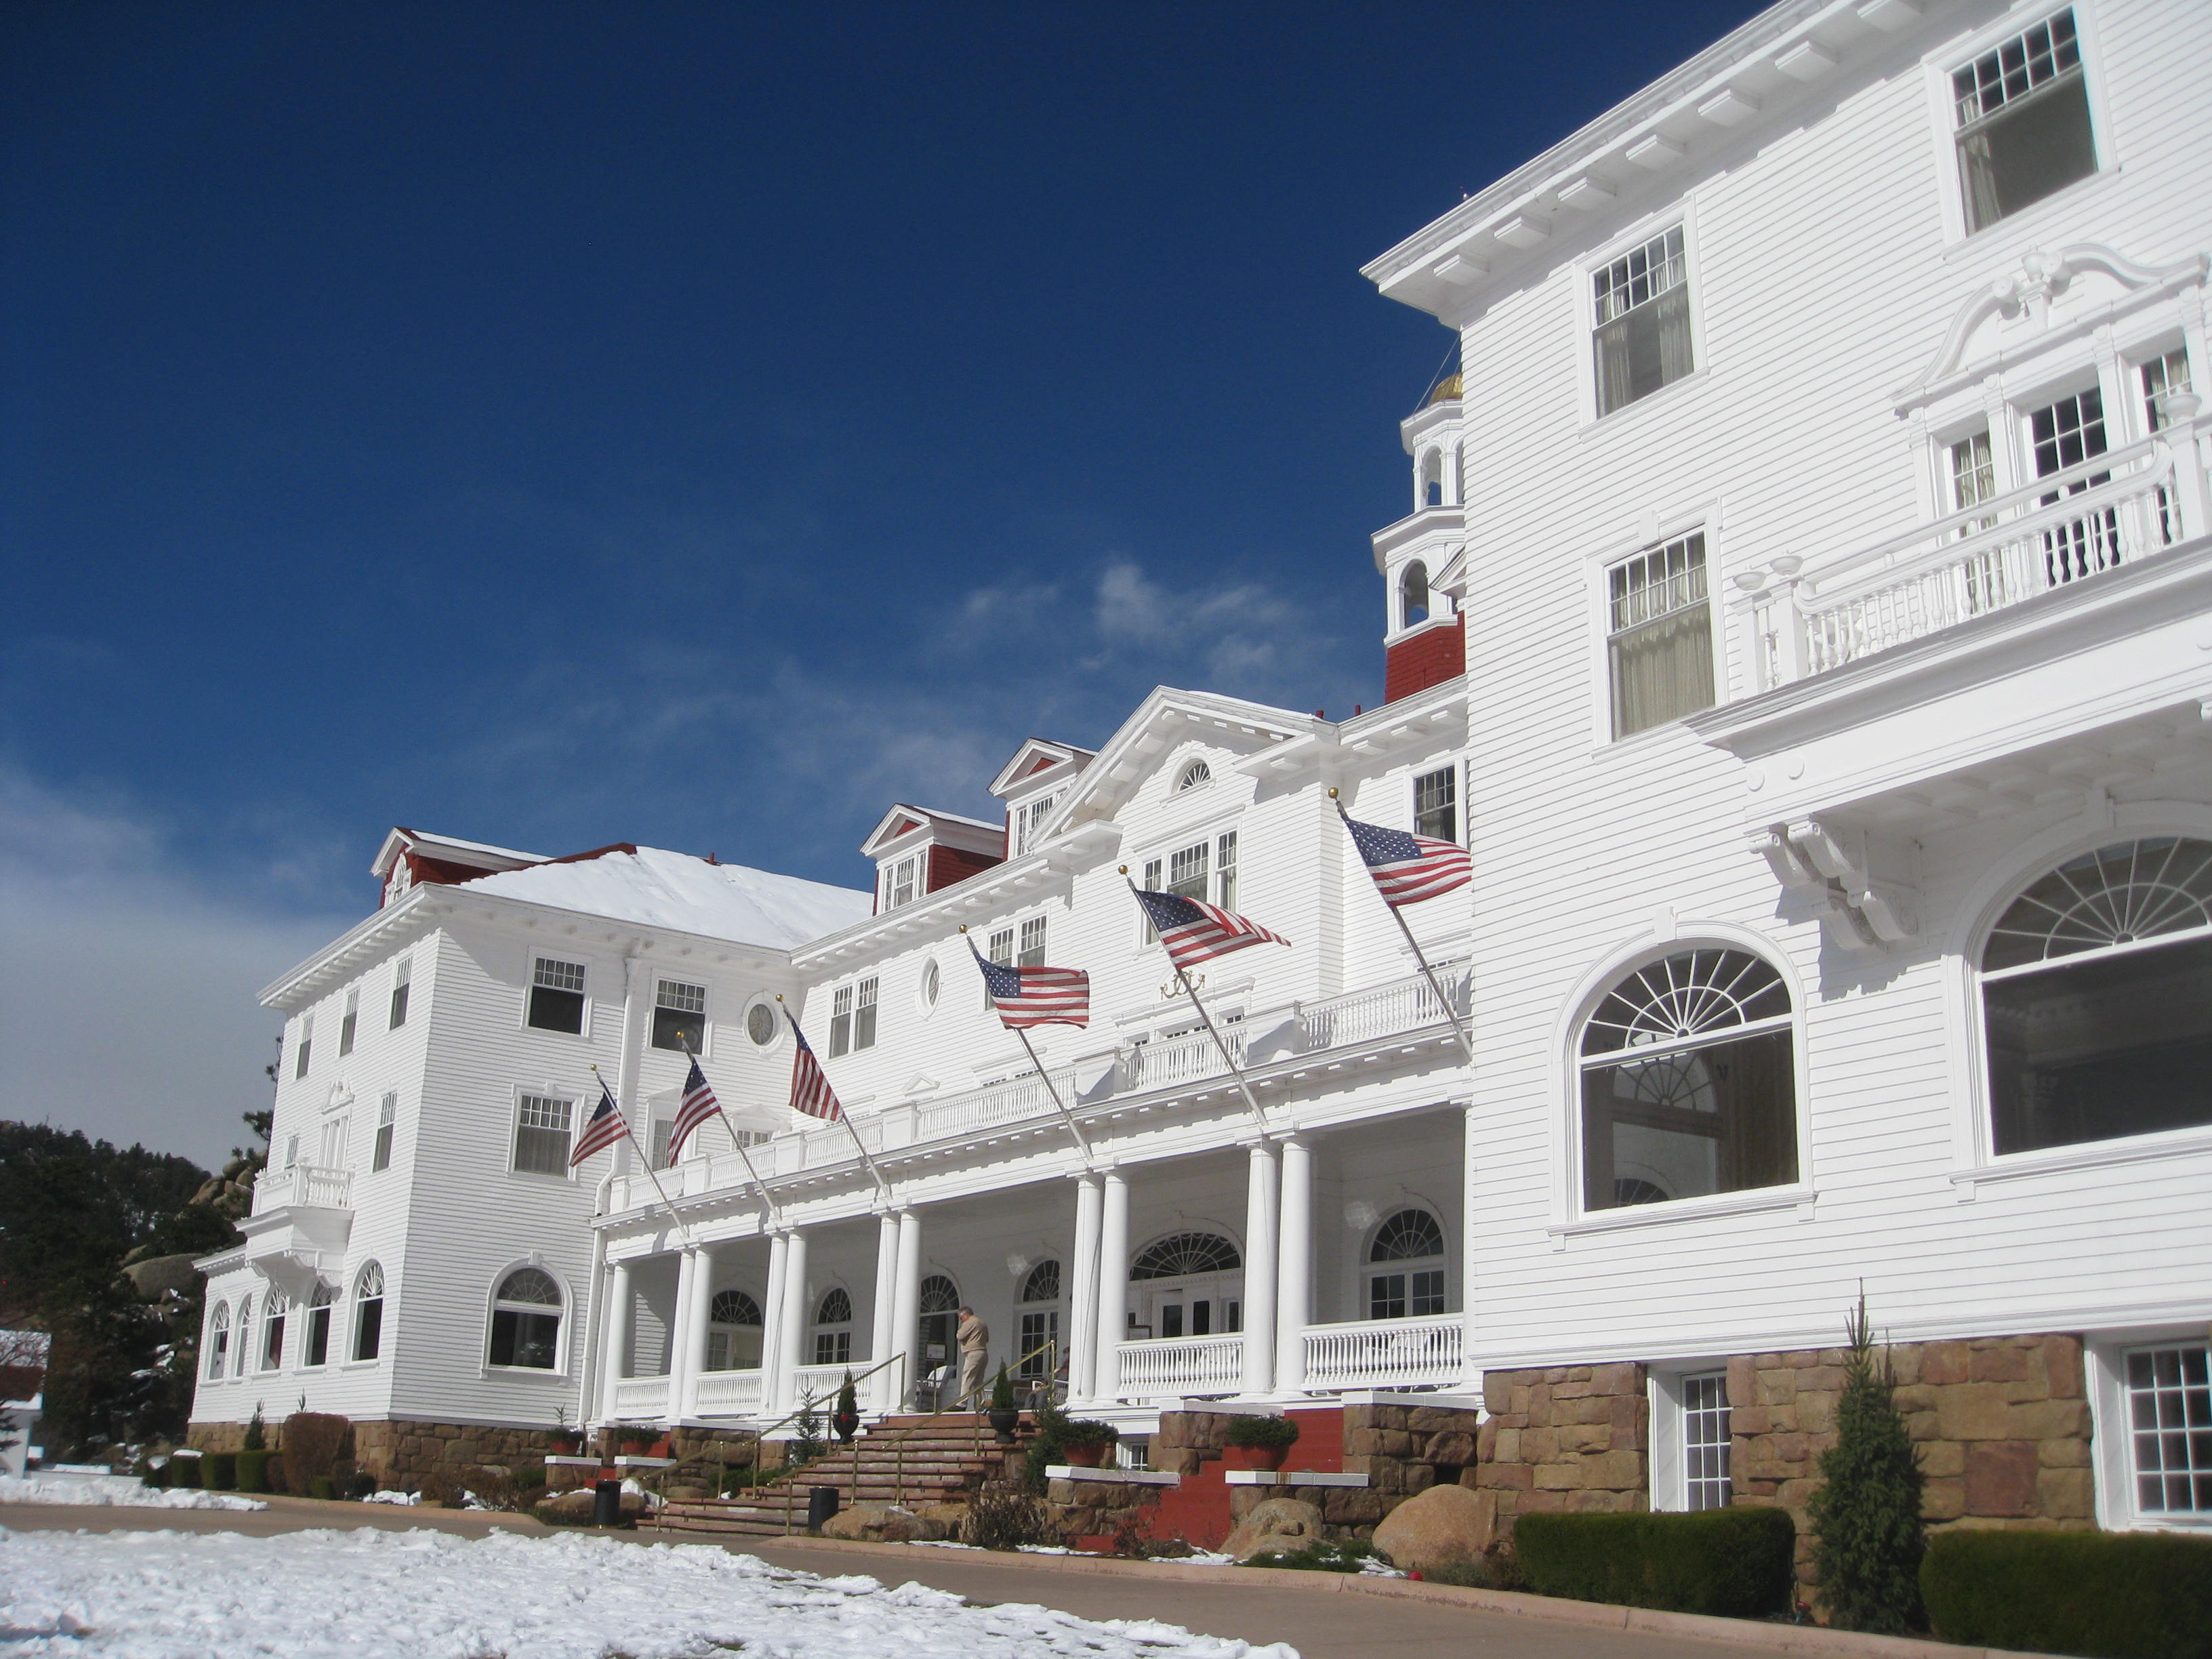 The Shining Ball at the Stanley Hotel   Seasweetie's Pages